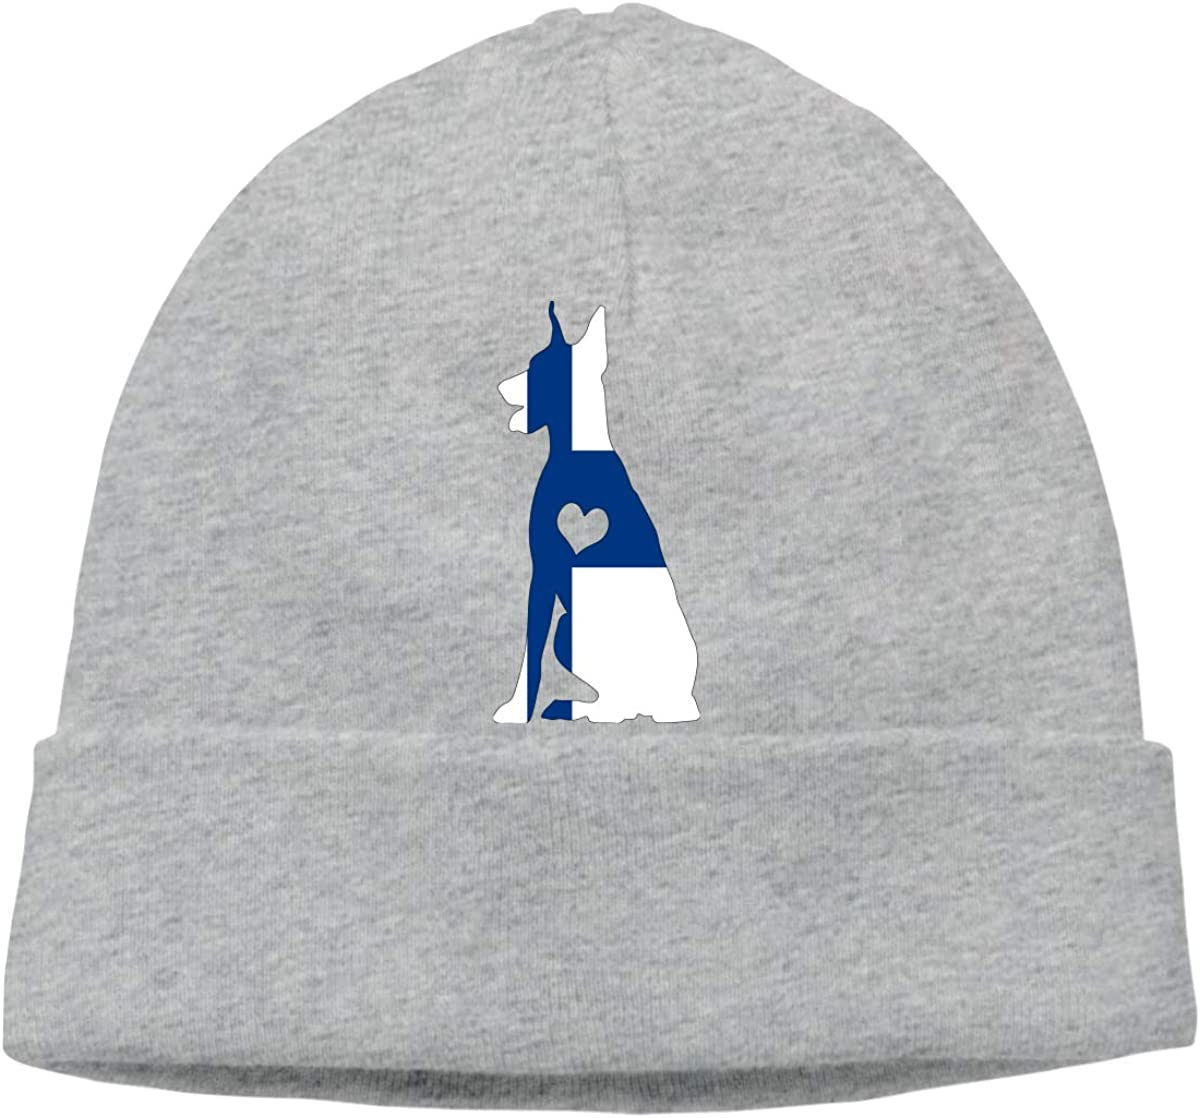 BF5Y3z/&MA Finland Flag Adore Dobermans Dog Beanie Hat for Men Women,Daily Knitted Cap Skiing Cap